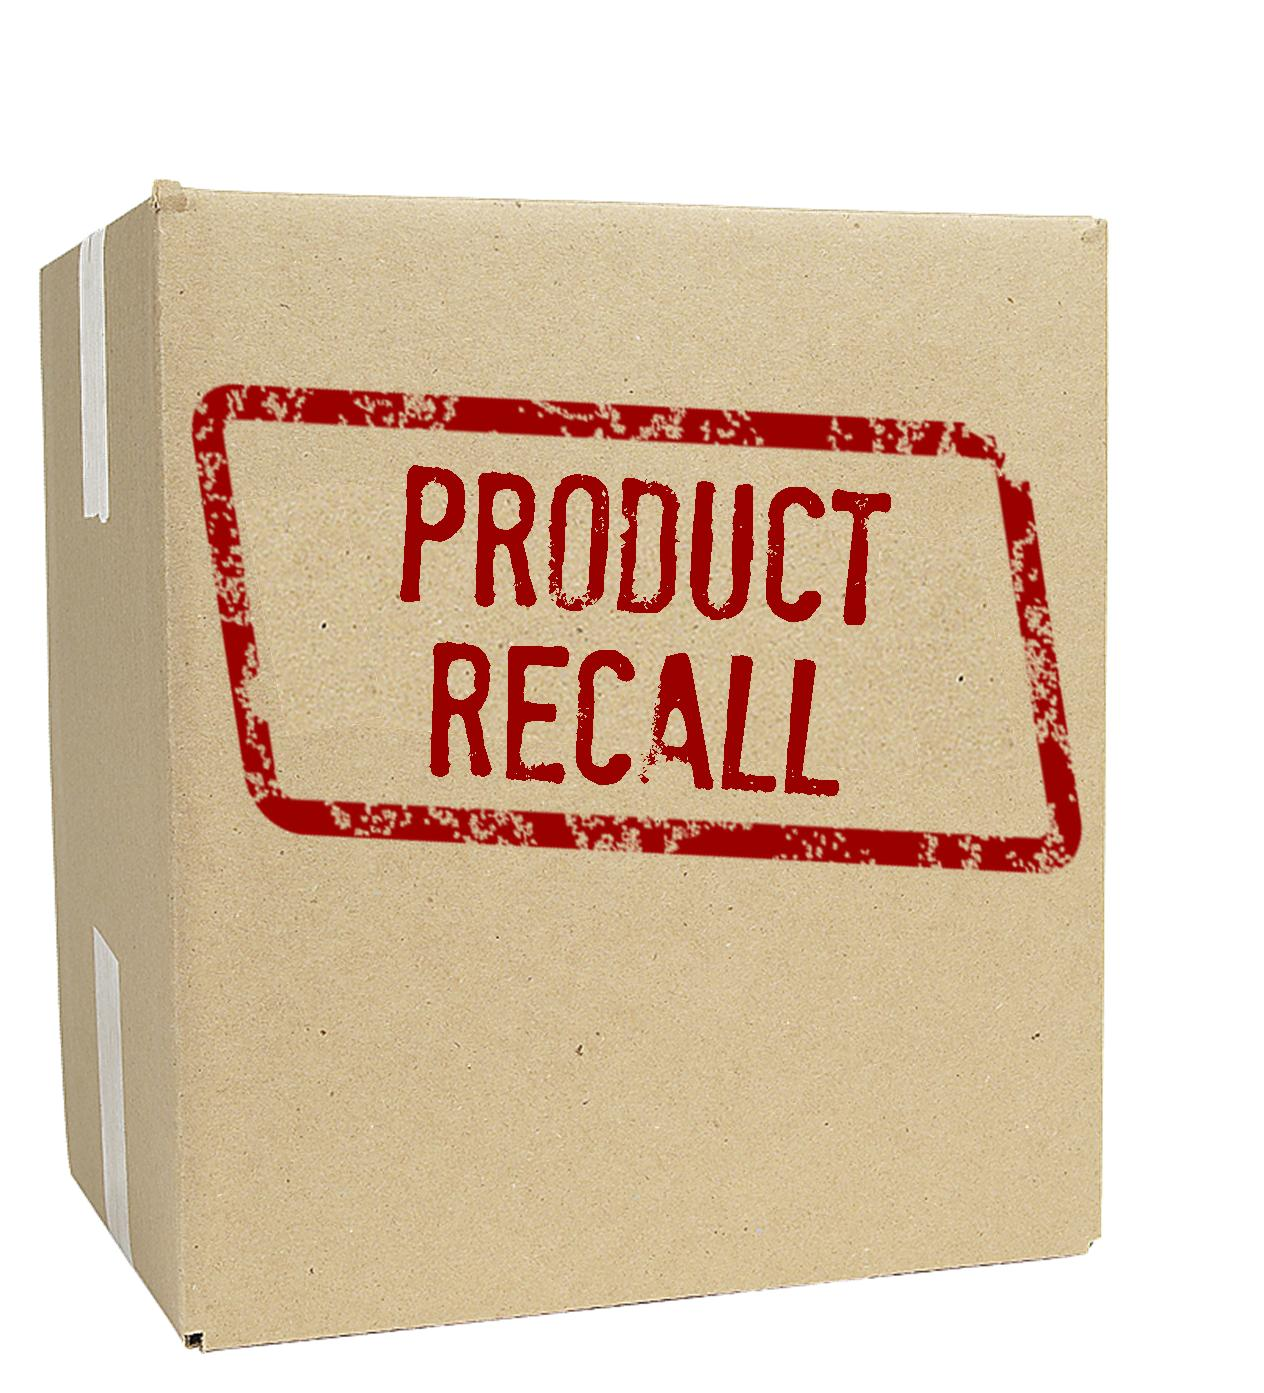 What Makes A Successful Product Recall?